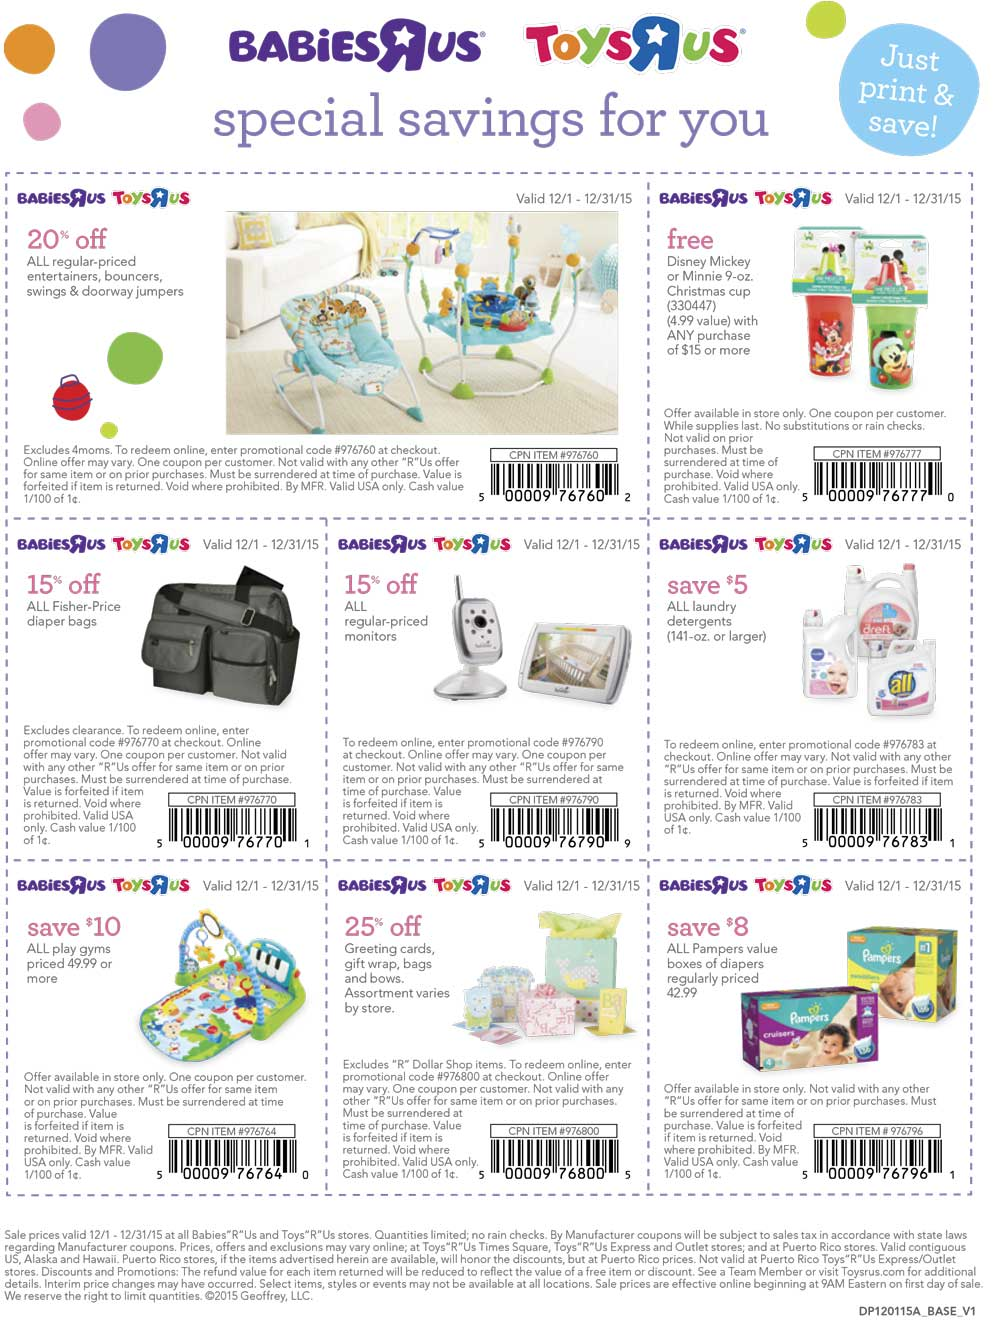 Toys R Us Coupon December 2016 Free Disney cup & various baby related coupons for Toys R Us & Babies R Us